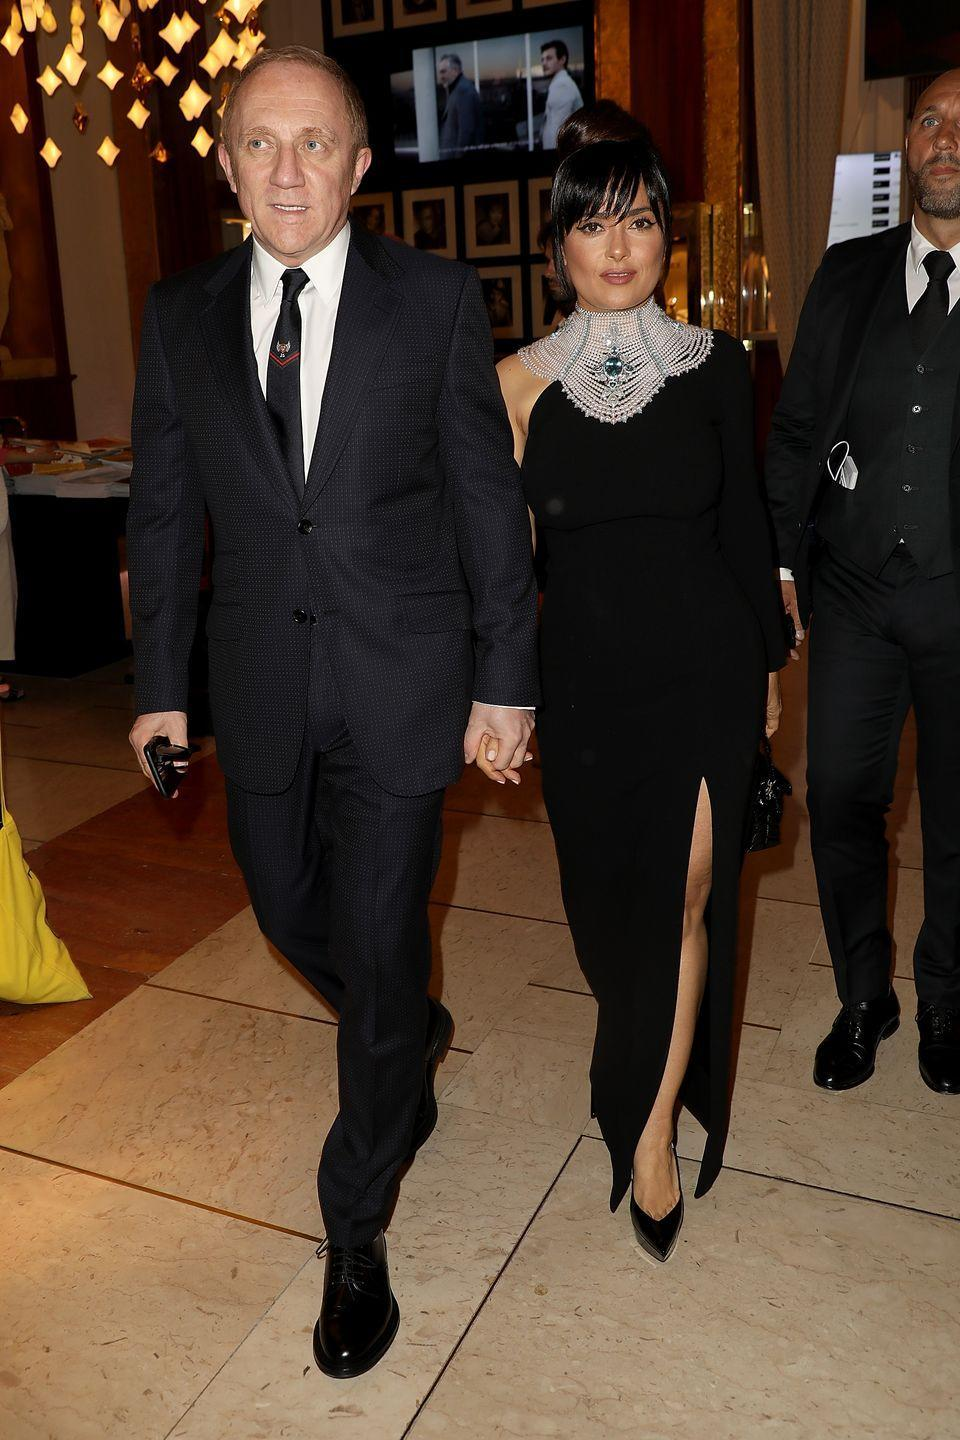 "<p>The pair were set up back in 2006 and the blind date could not have started off worse. </p><p>""I didn't know it was a date,"" the actress told <em><a href=""http://latina.com/entertainment/celebrity/salma-hayek-latina-magazine-october-2015-cover-star?page=1,1"" rel=""nofollow noopener"" target=""_blank"" data-ylk=""slk:Latina"" class=""link rapid-noclick-resp"">Latina</a>.</em> ""I thought I was going to an event, and then there was one person at it. I was set up by friends to think I was going to an event, because they knew I wouldn't go on a date! I was angry. And he didn't know, because he thought I knew he was coming just to meet me. I started out really badly, but, as you can see, it ended happy."" <br></p>"